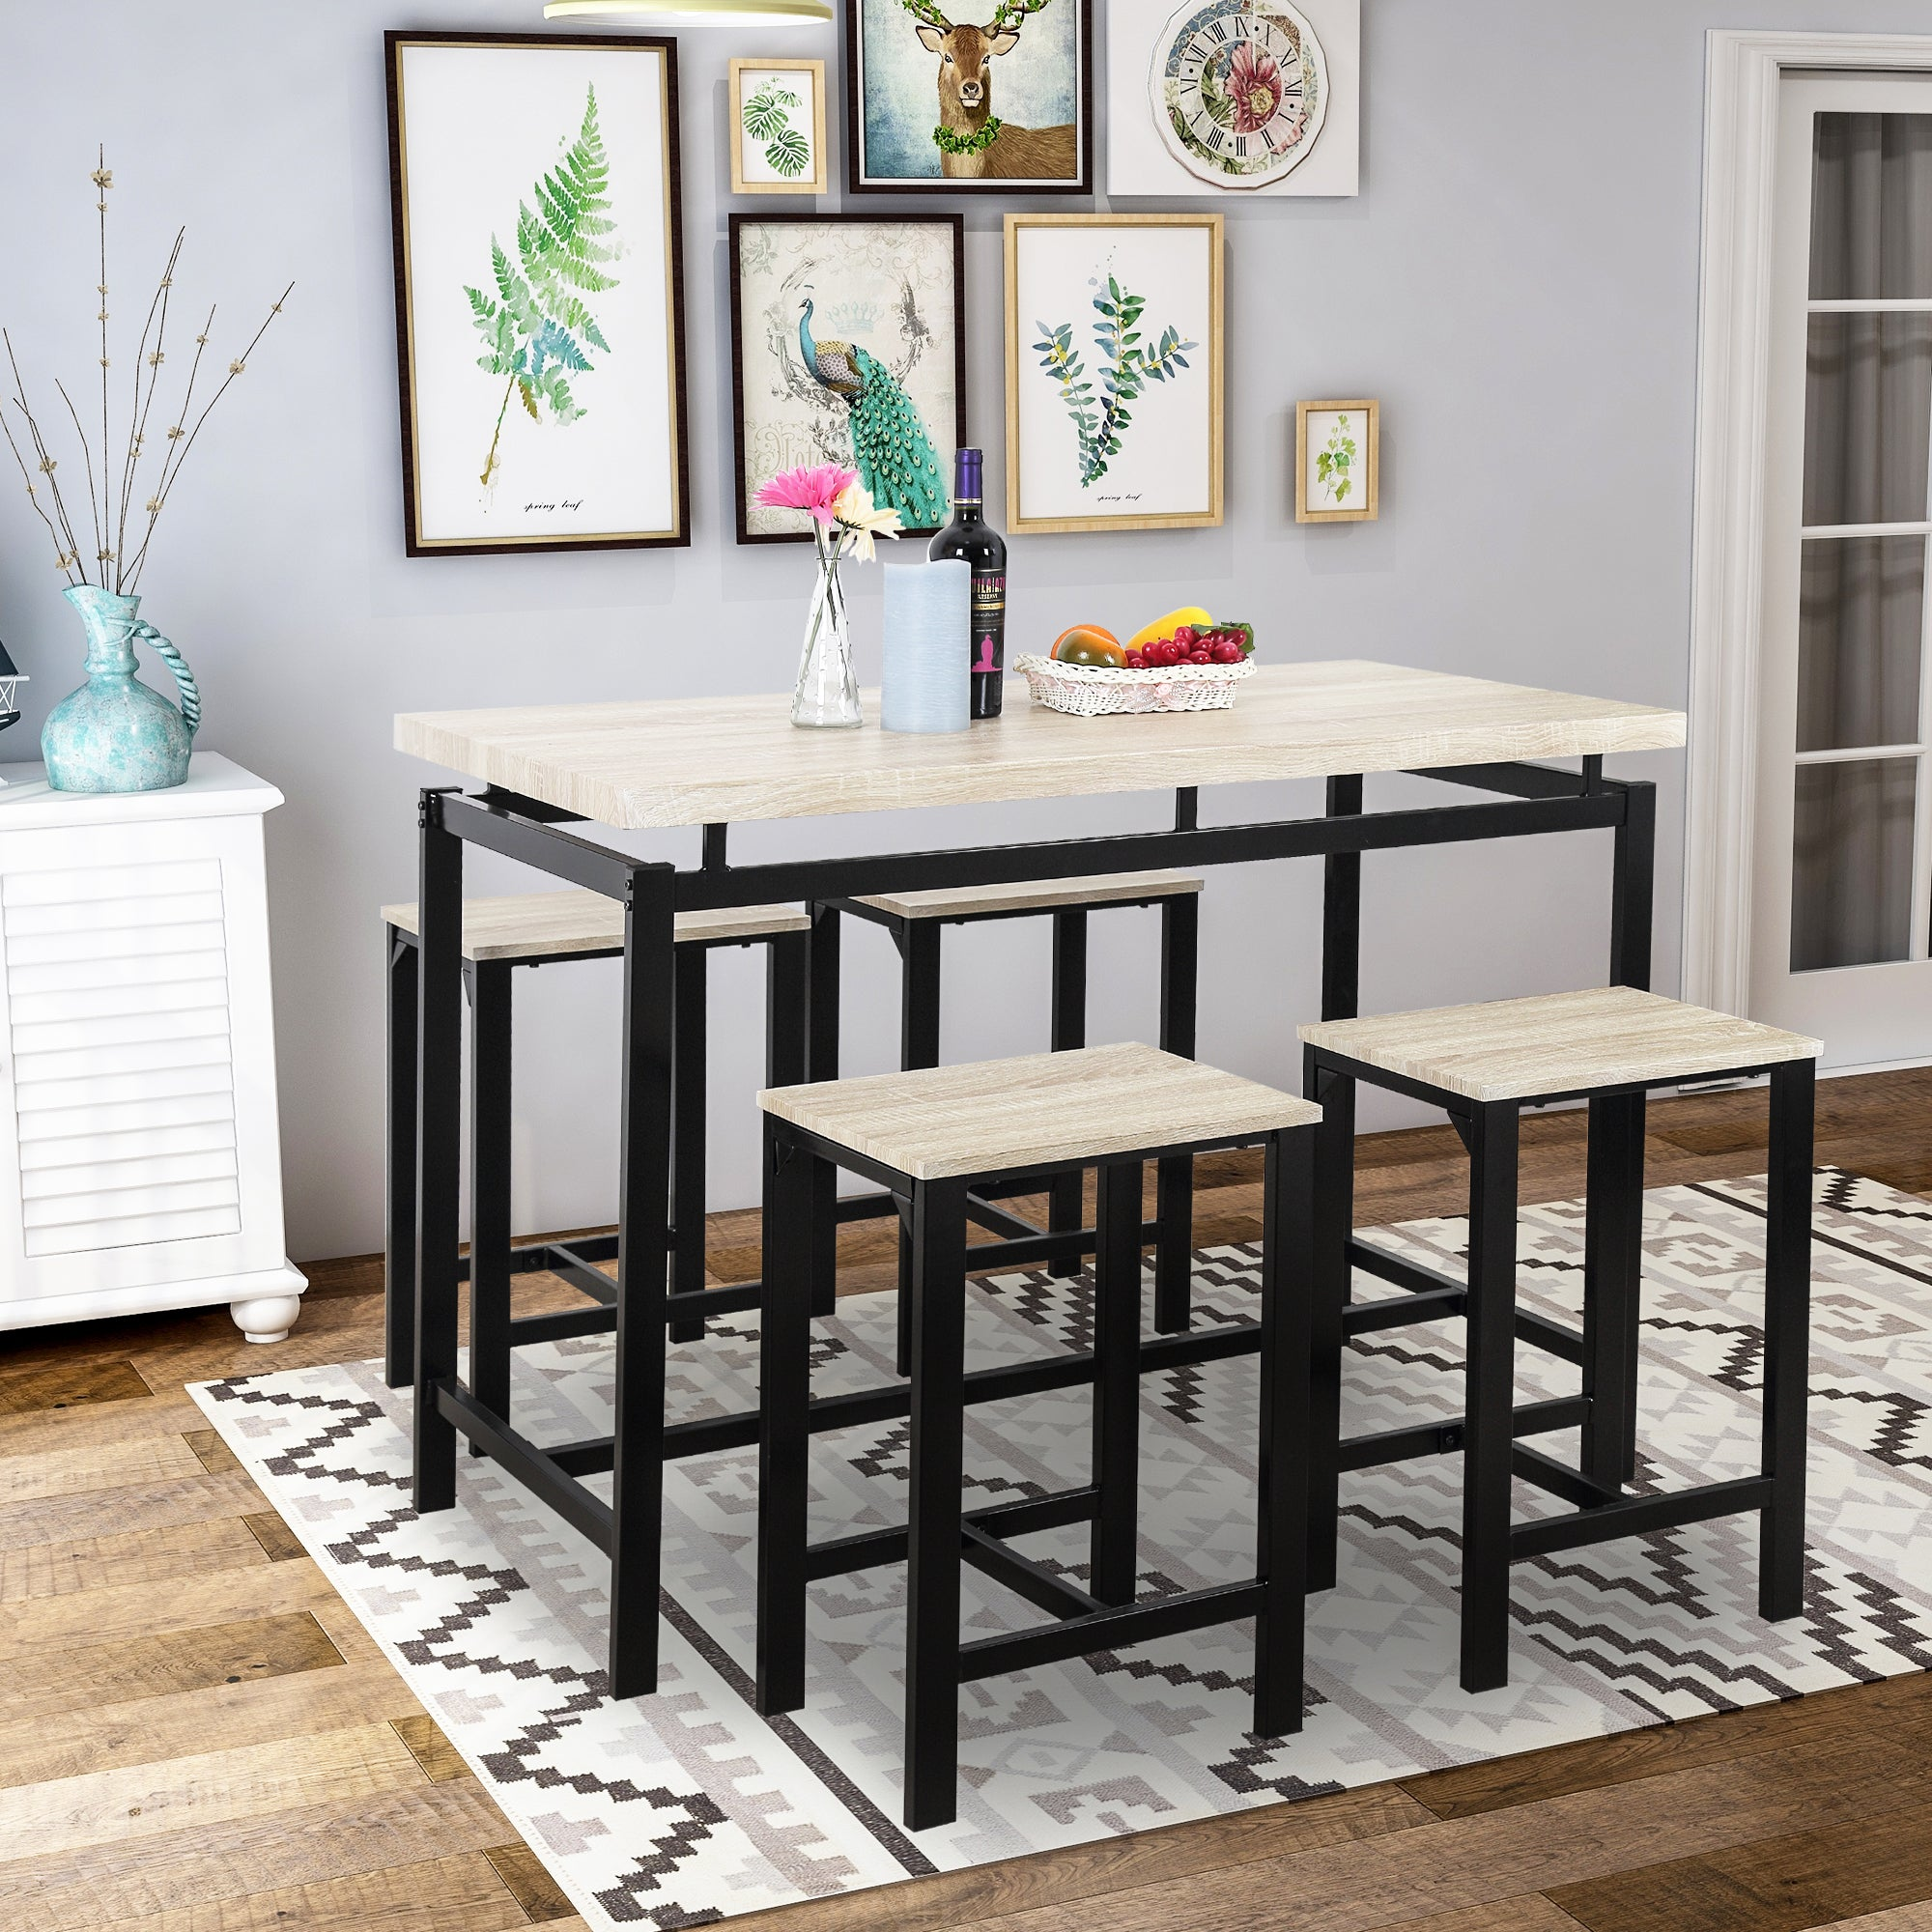 5 Piece Bar Dining Table Set